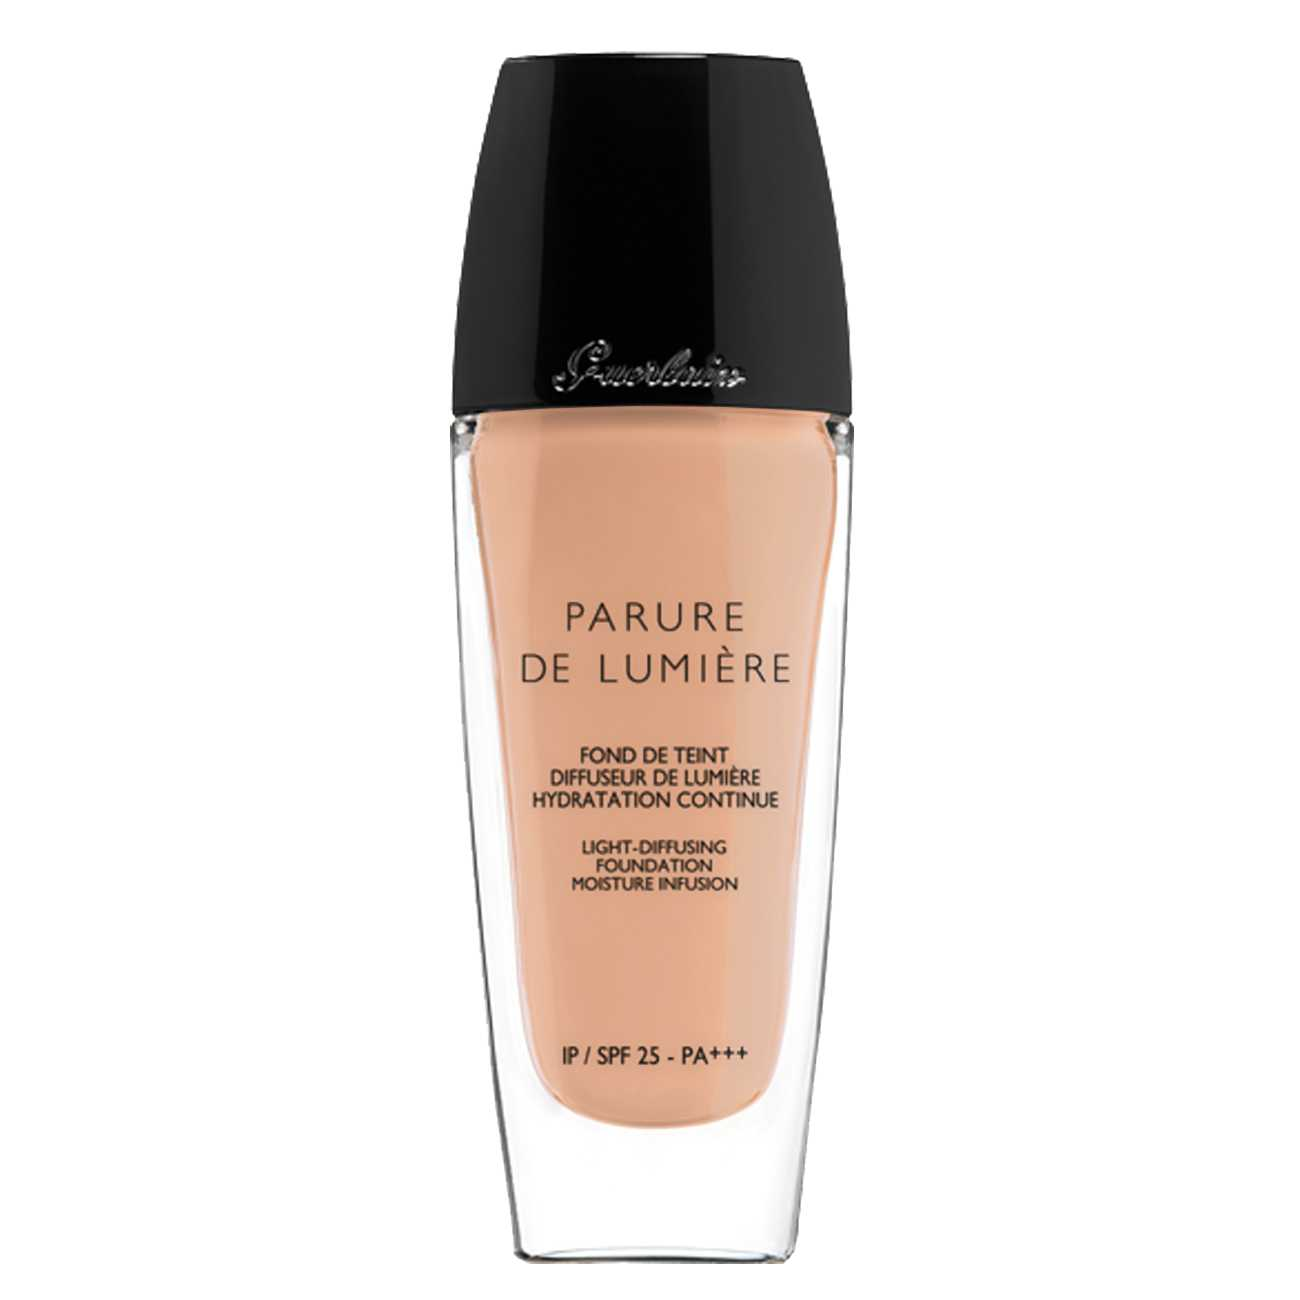 PARURE DE LUMIERE 30 ML Rose Naturel 13 imagine produs